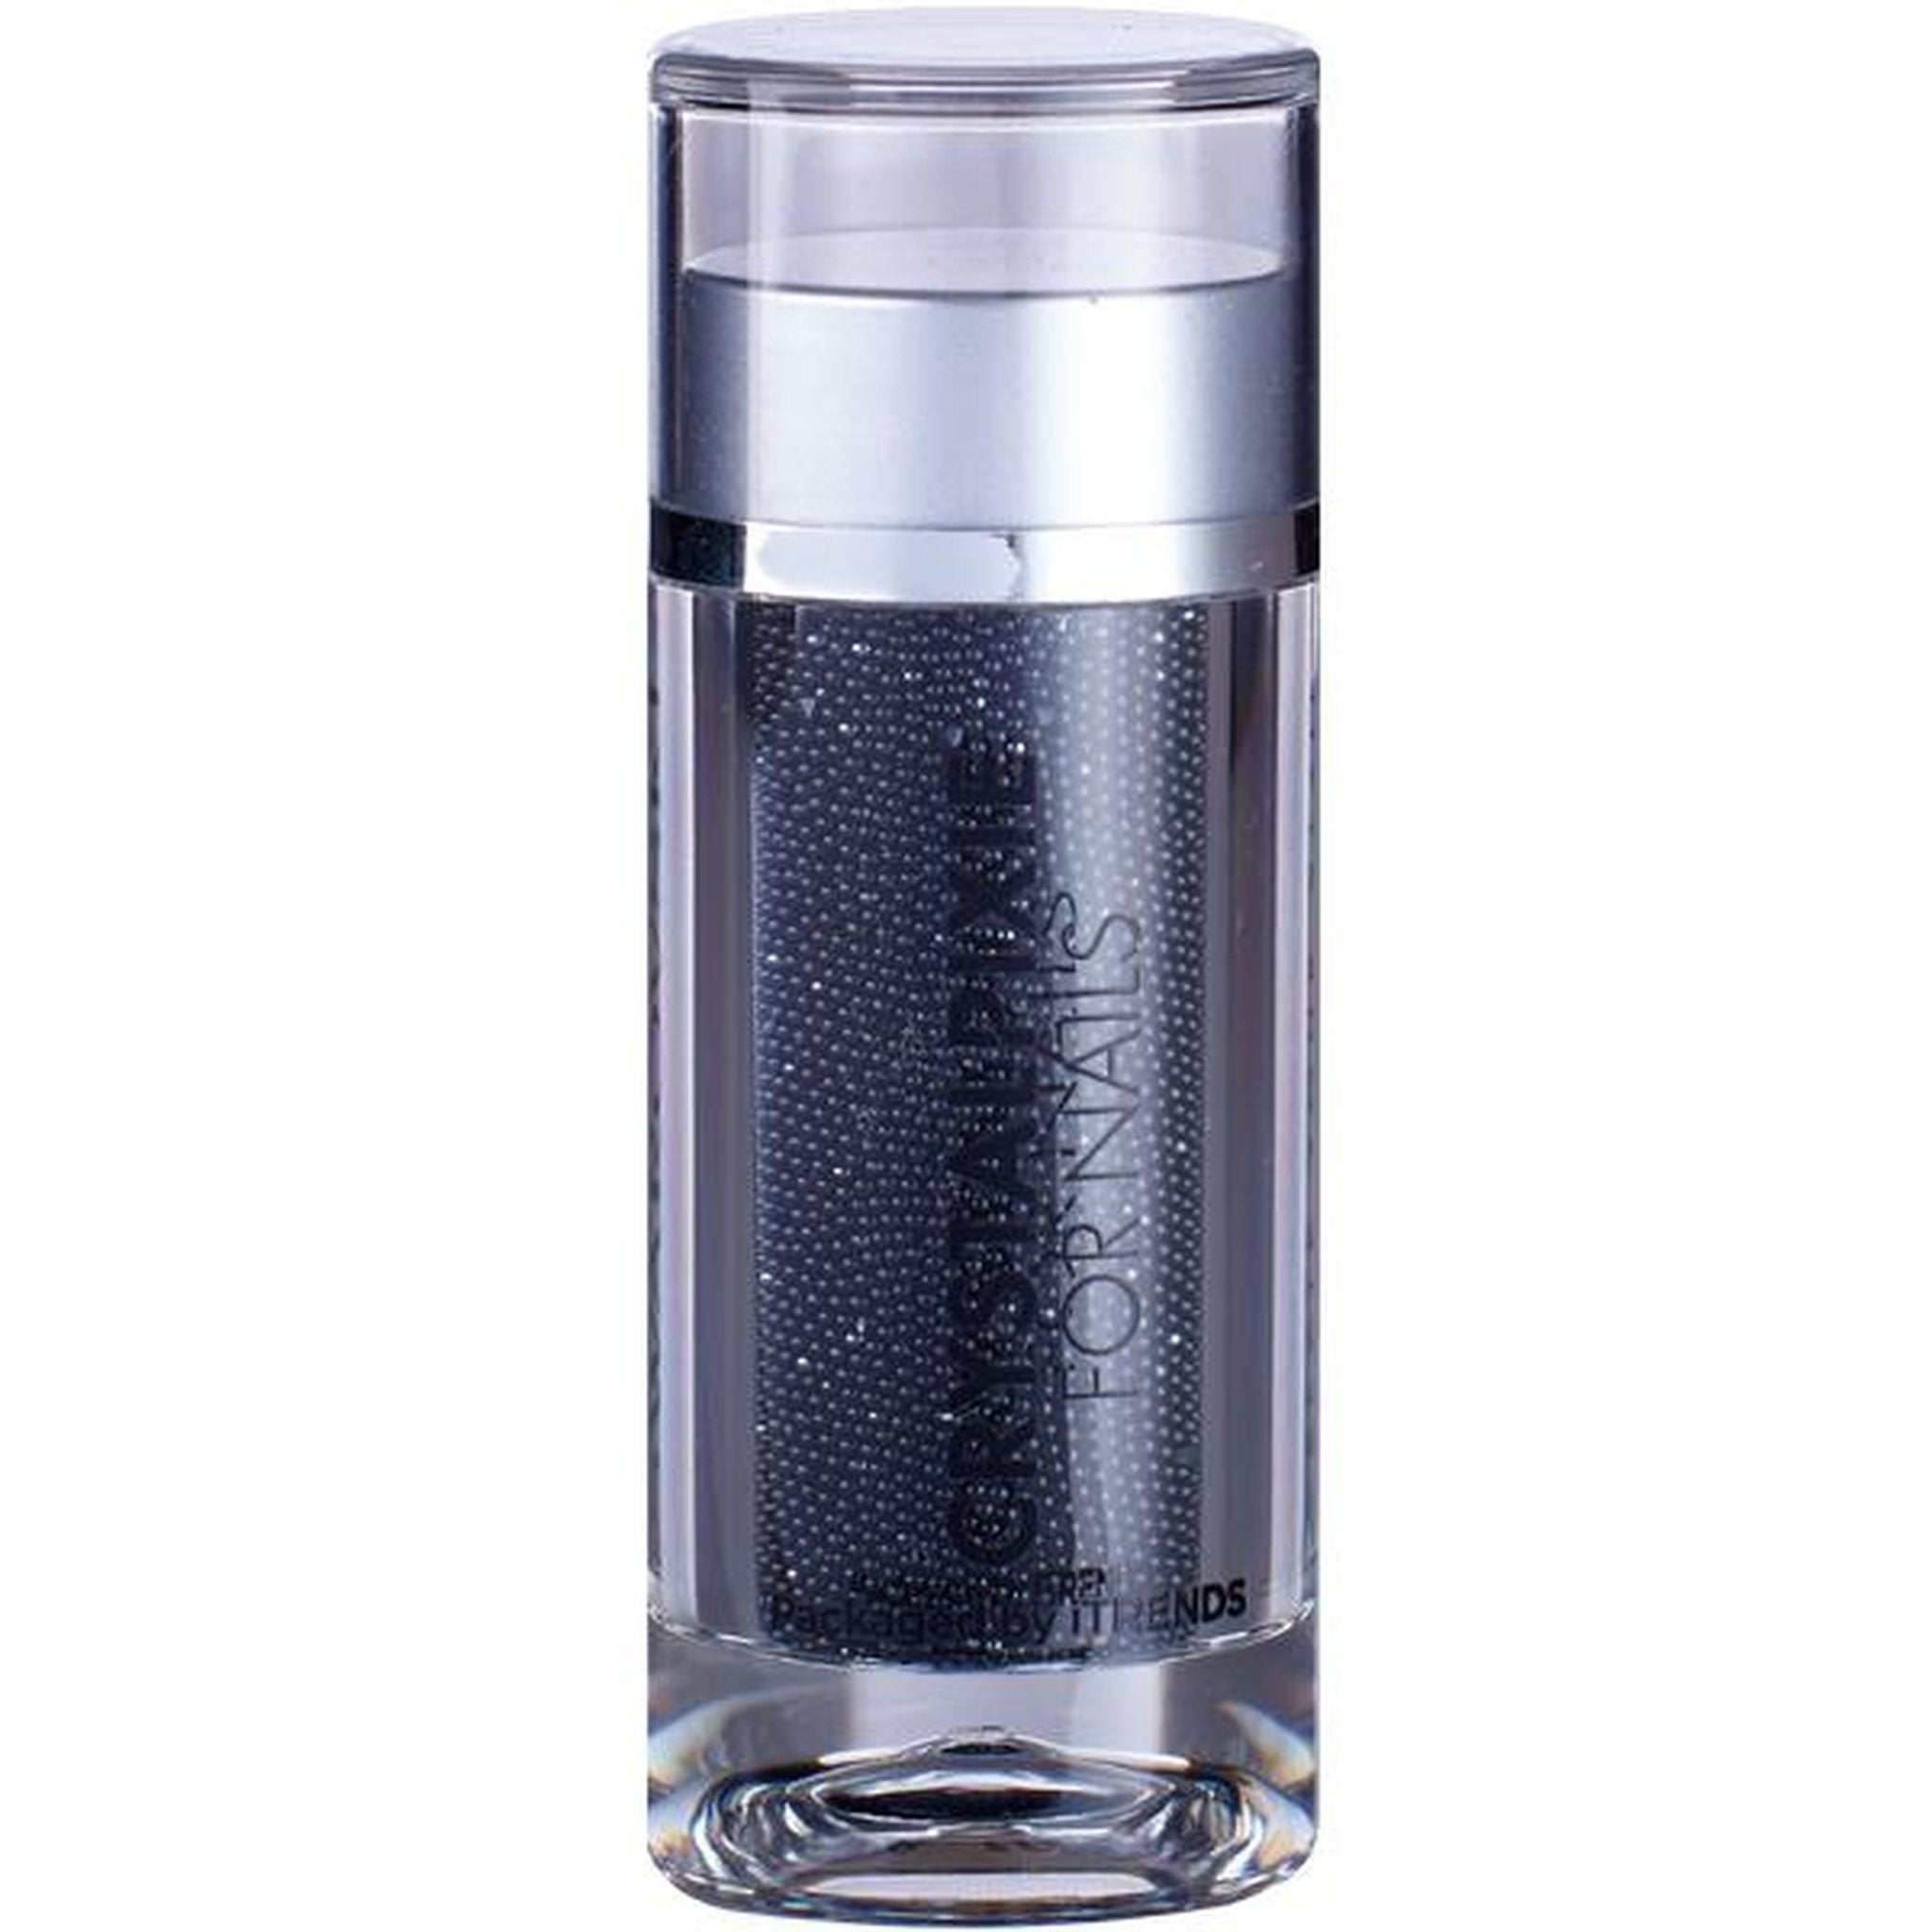 Swarovski Crystalpixie - Rock Shock 10g Refill-Gel Essentialz